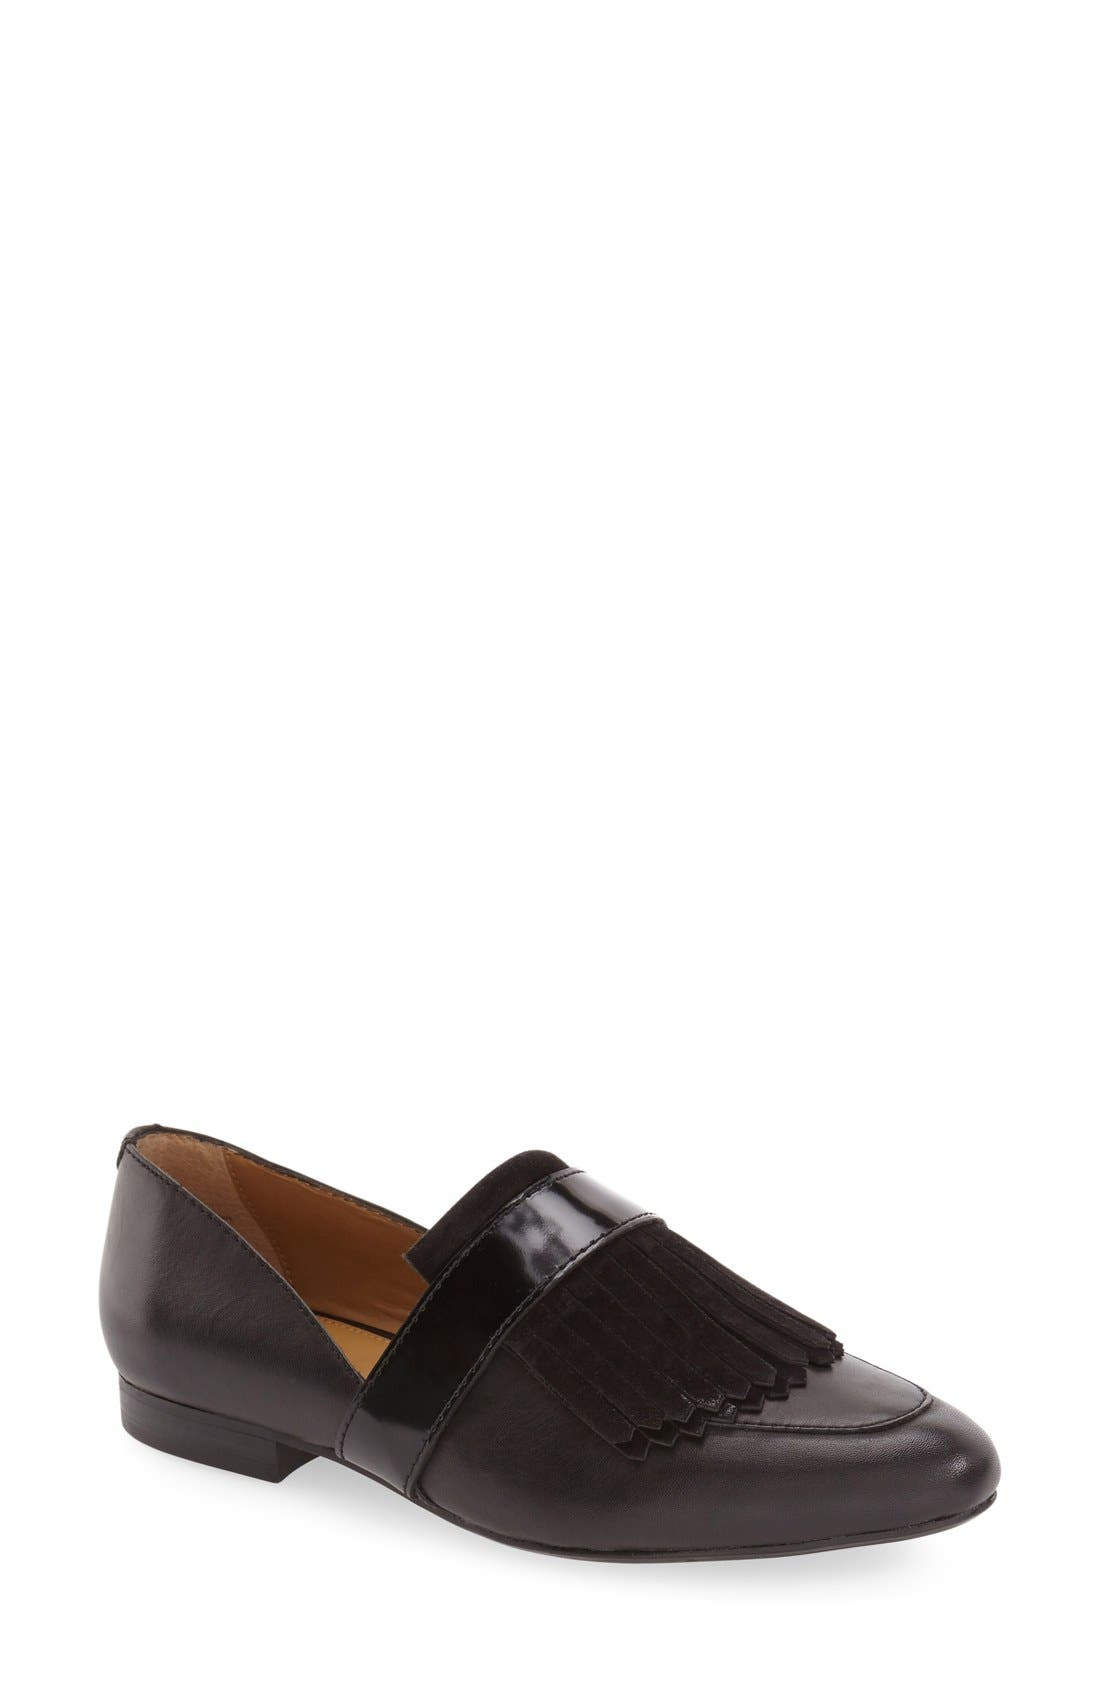 'Harlow' Kiltie Leather Loafer,                         Main,                         color, BLACK LEATHER